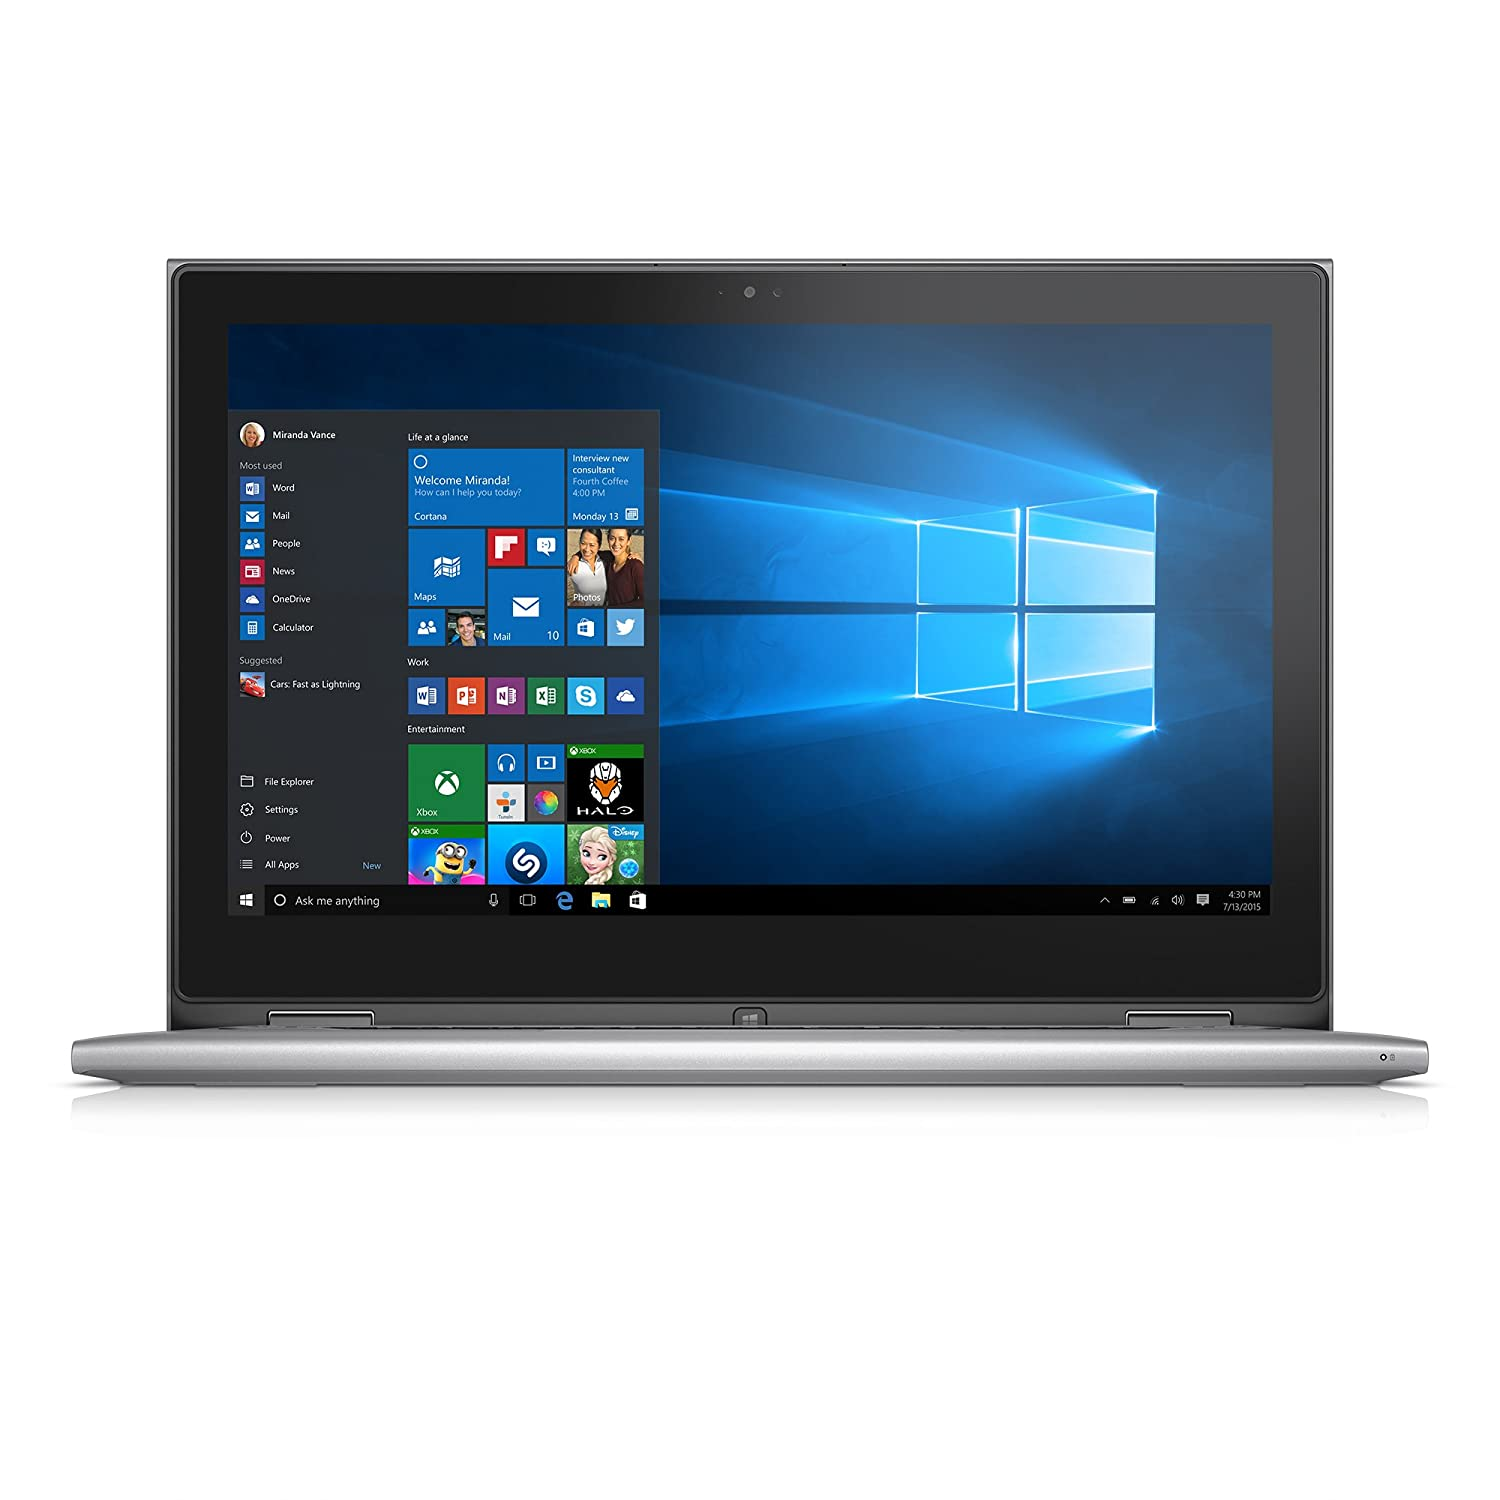 Dell Inspiron i7359-4371SLV 13.3 Inch 2-in-1 Touchscreen Laptop (6th Generation Intel Core i5, 8 GB RAM, 500 GB HDD + 8 GB SSD)